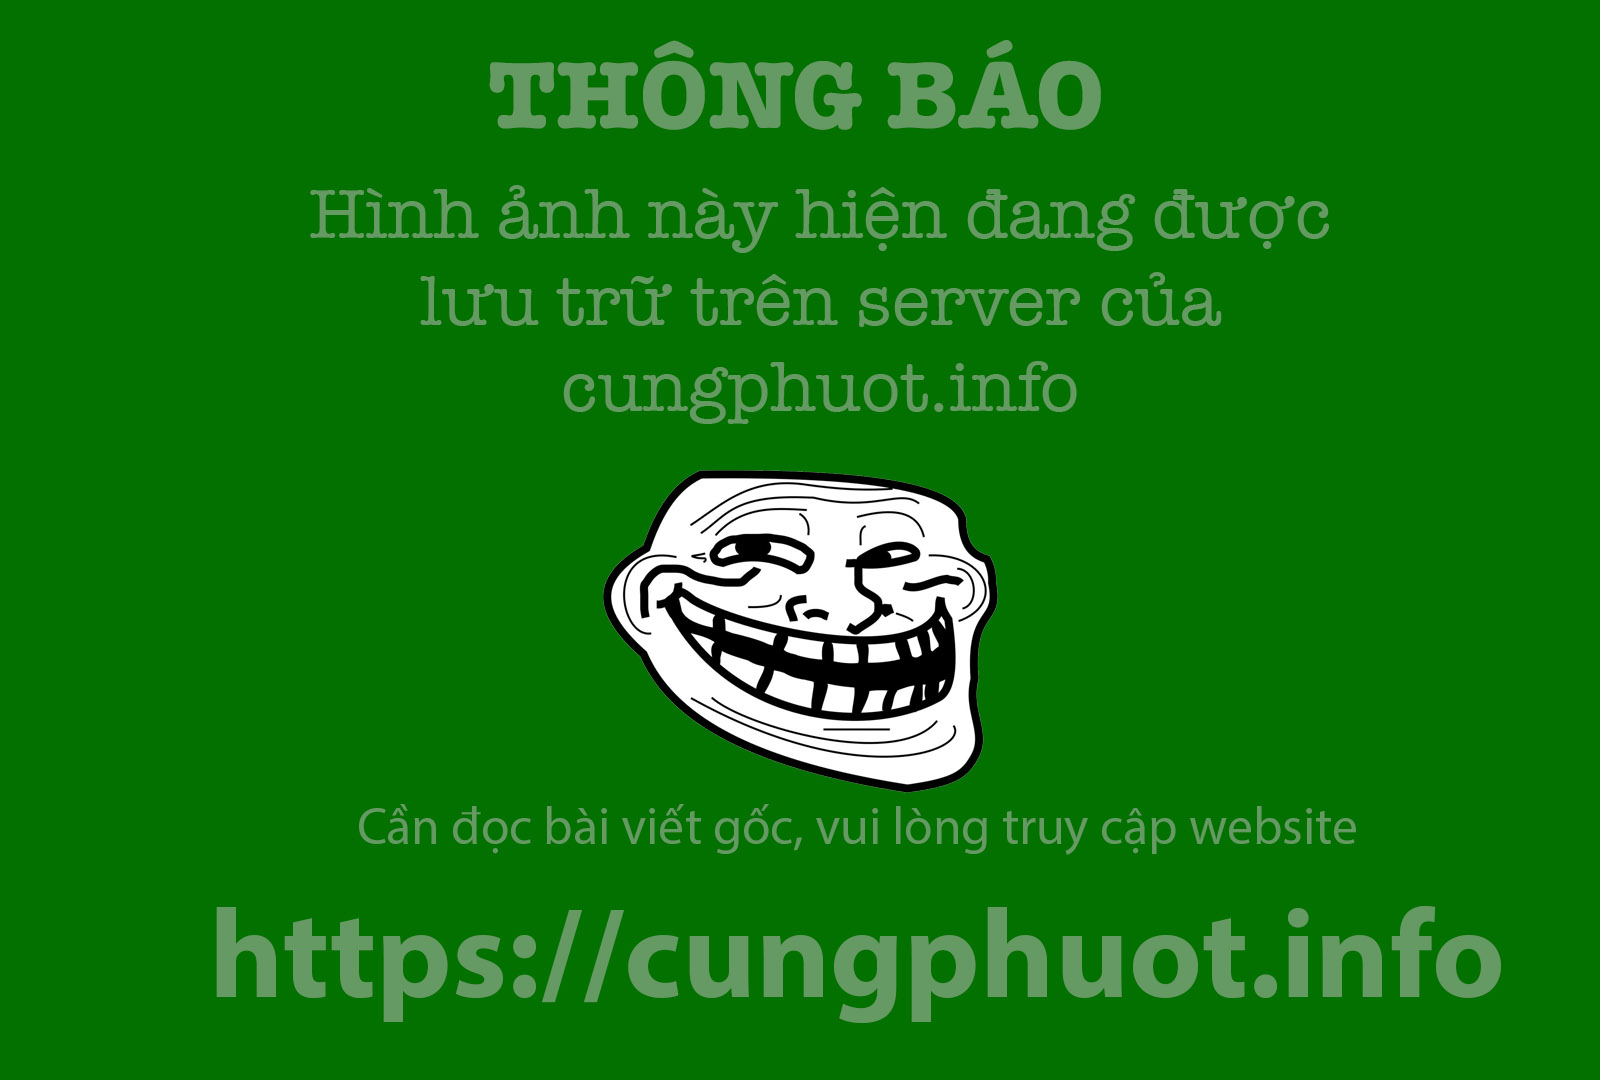 Mien Tay mua nuoc noi di mai chang het diem check-in hinh anh 14